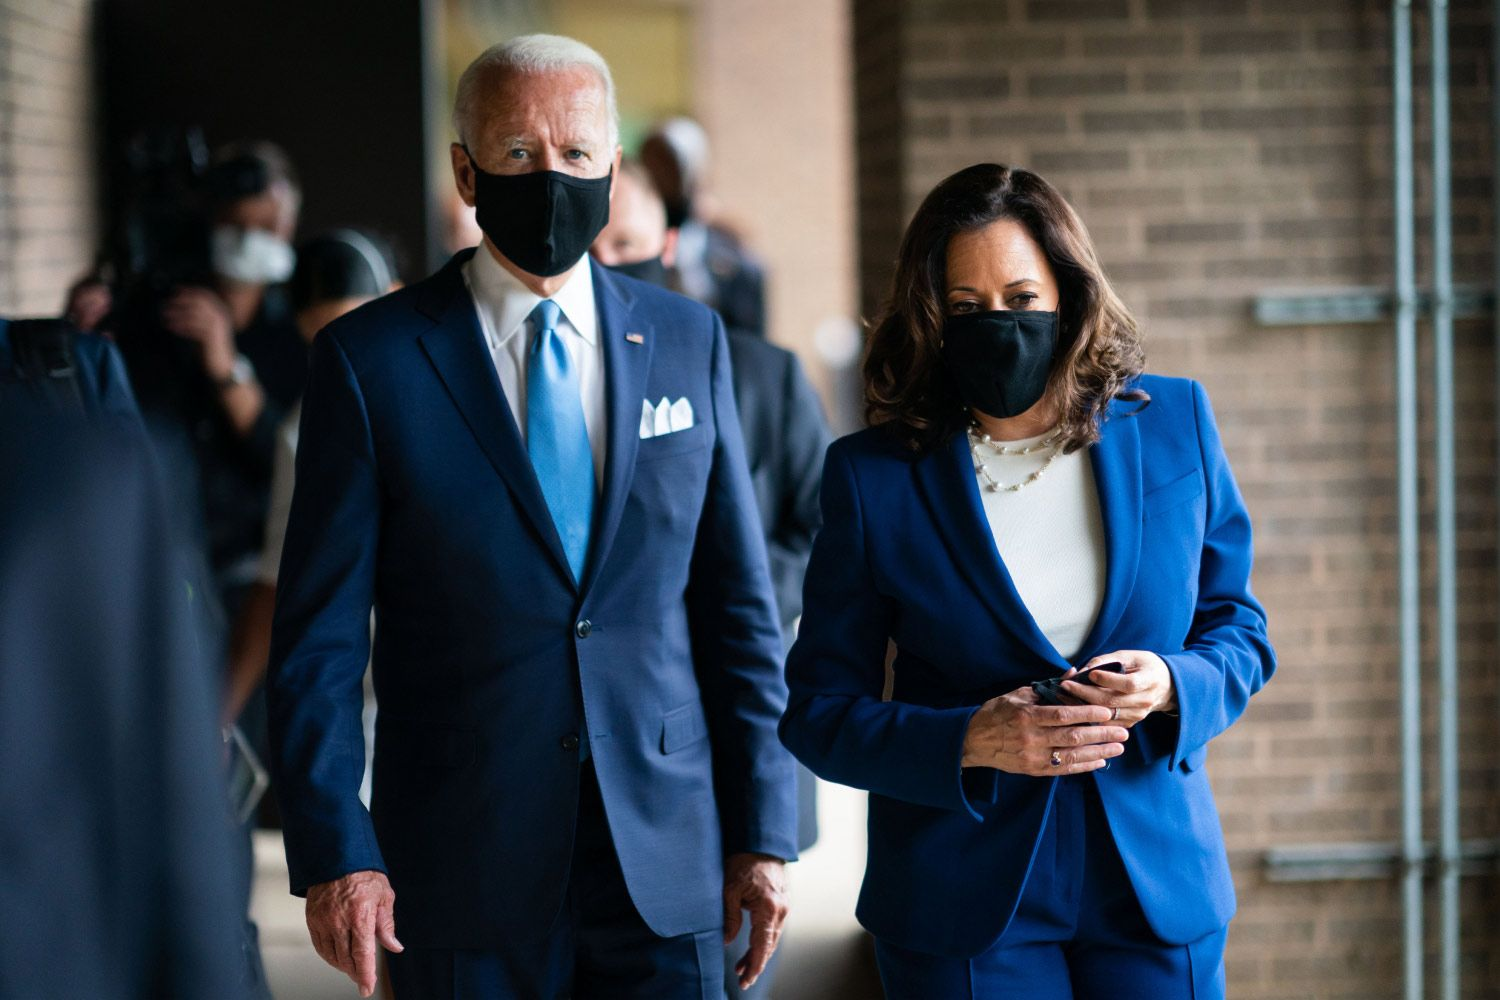 President Biden and VP Kamala Harris. Source: Whitehouse